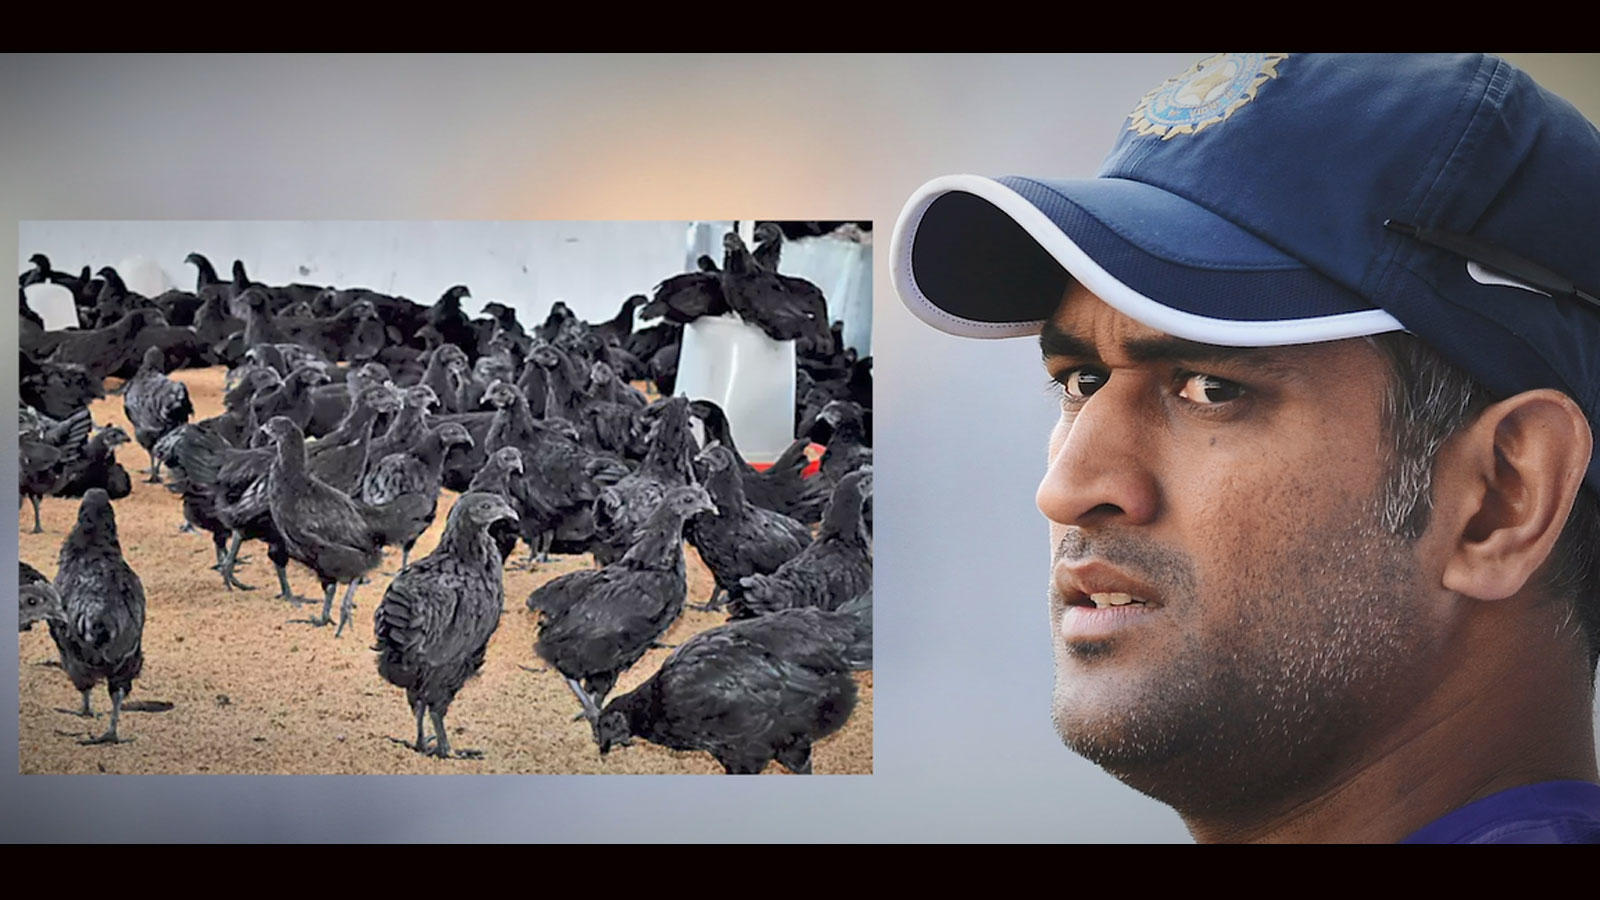 MS Dhoni set for organic poultry farming, orders 2000 black 'Kadaknath'  chickens | News - Times of India Videos